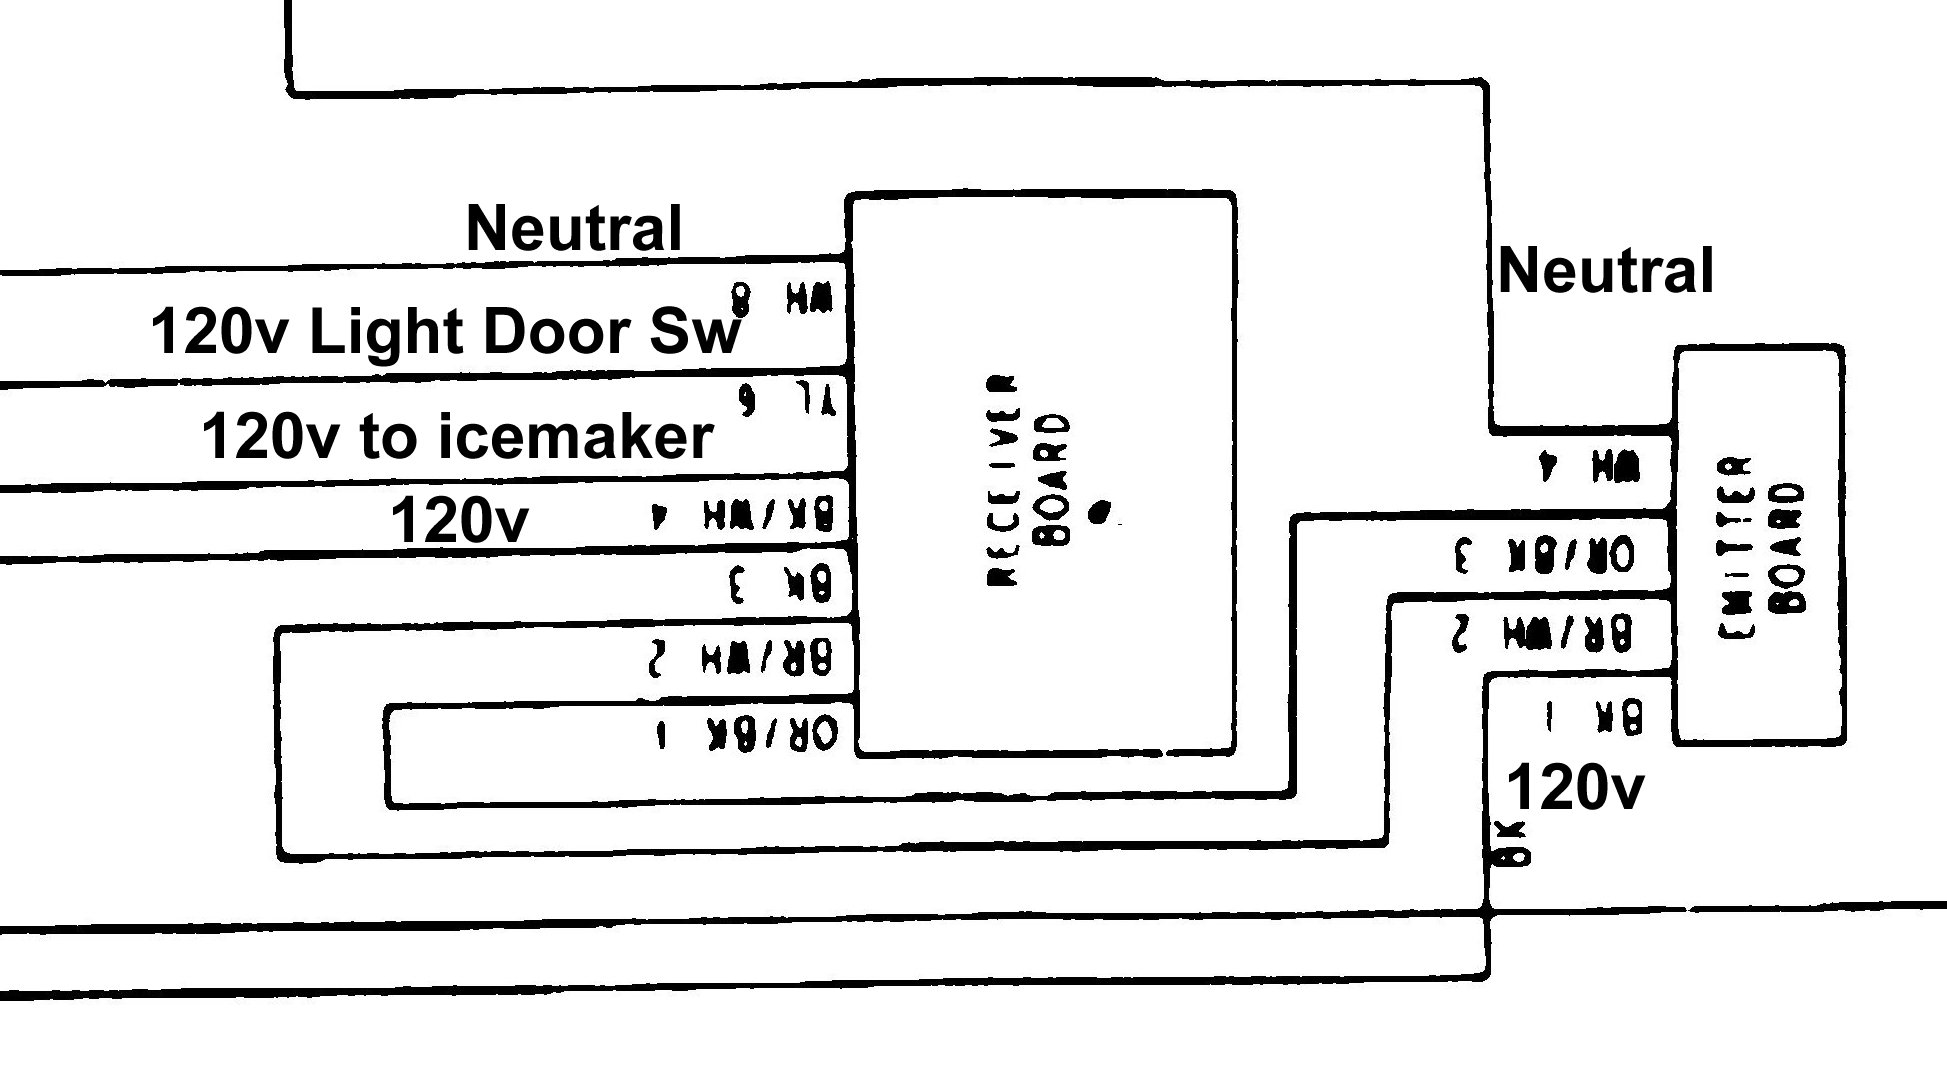 This is the wiring diagram for the  ice in the door  model (the one with the LED  full  detector) These are the LED cards  sc 1 st  HomeOwnersu0027 Hub : whirlpool refrigerator wiring diagram - yogabreezes.com